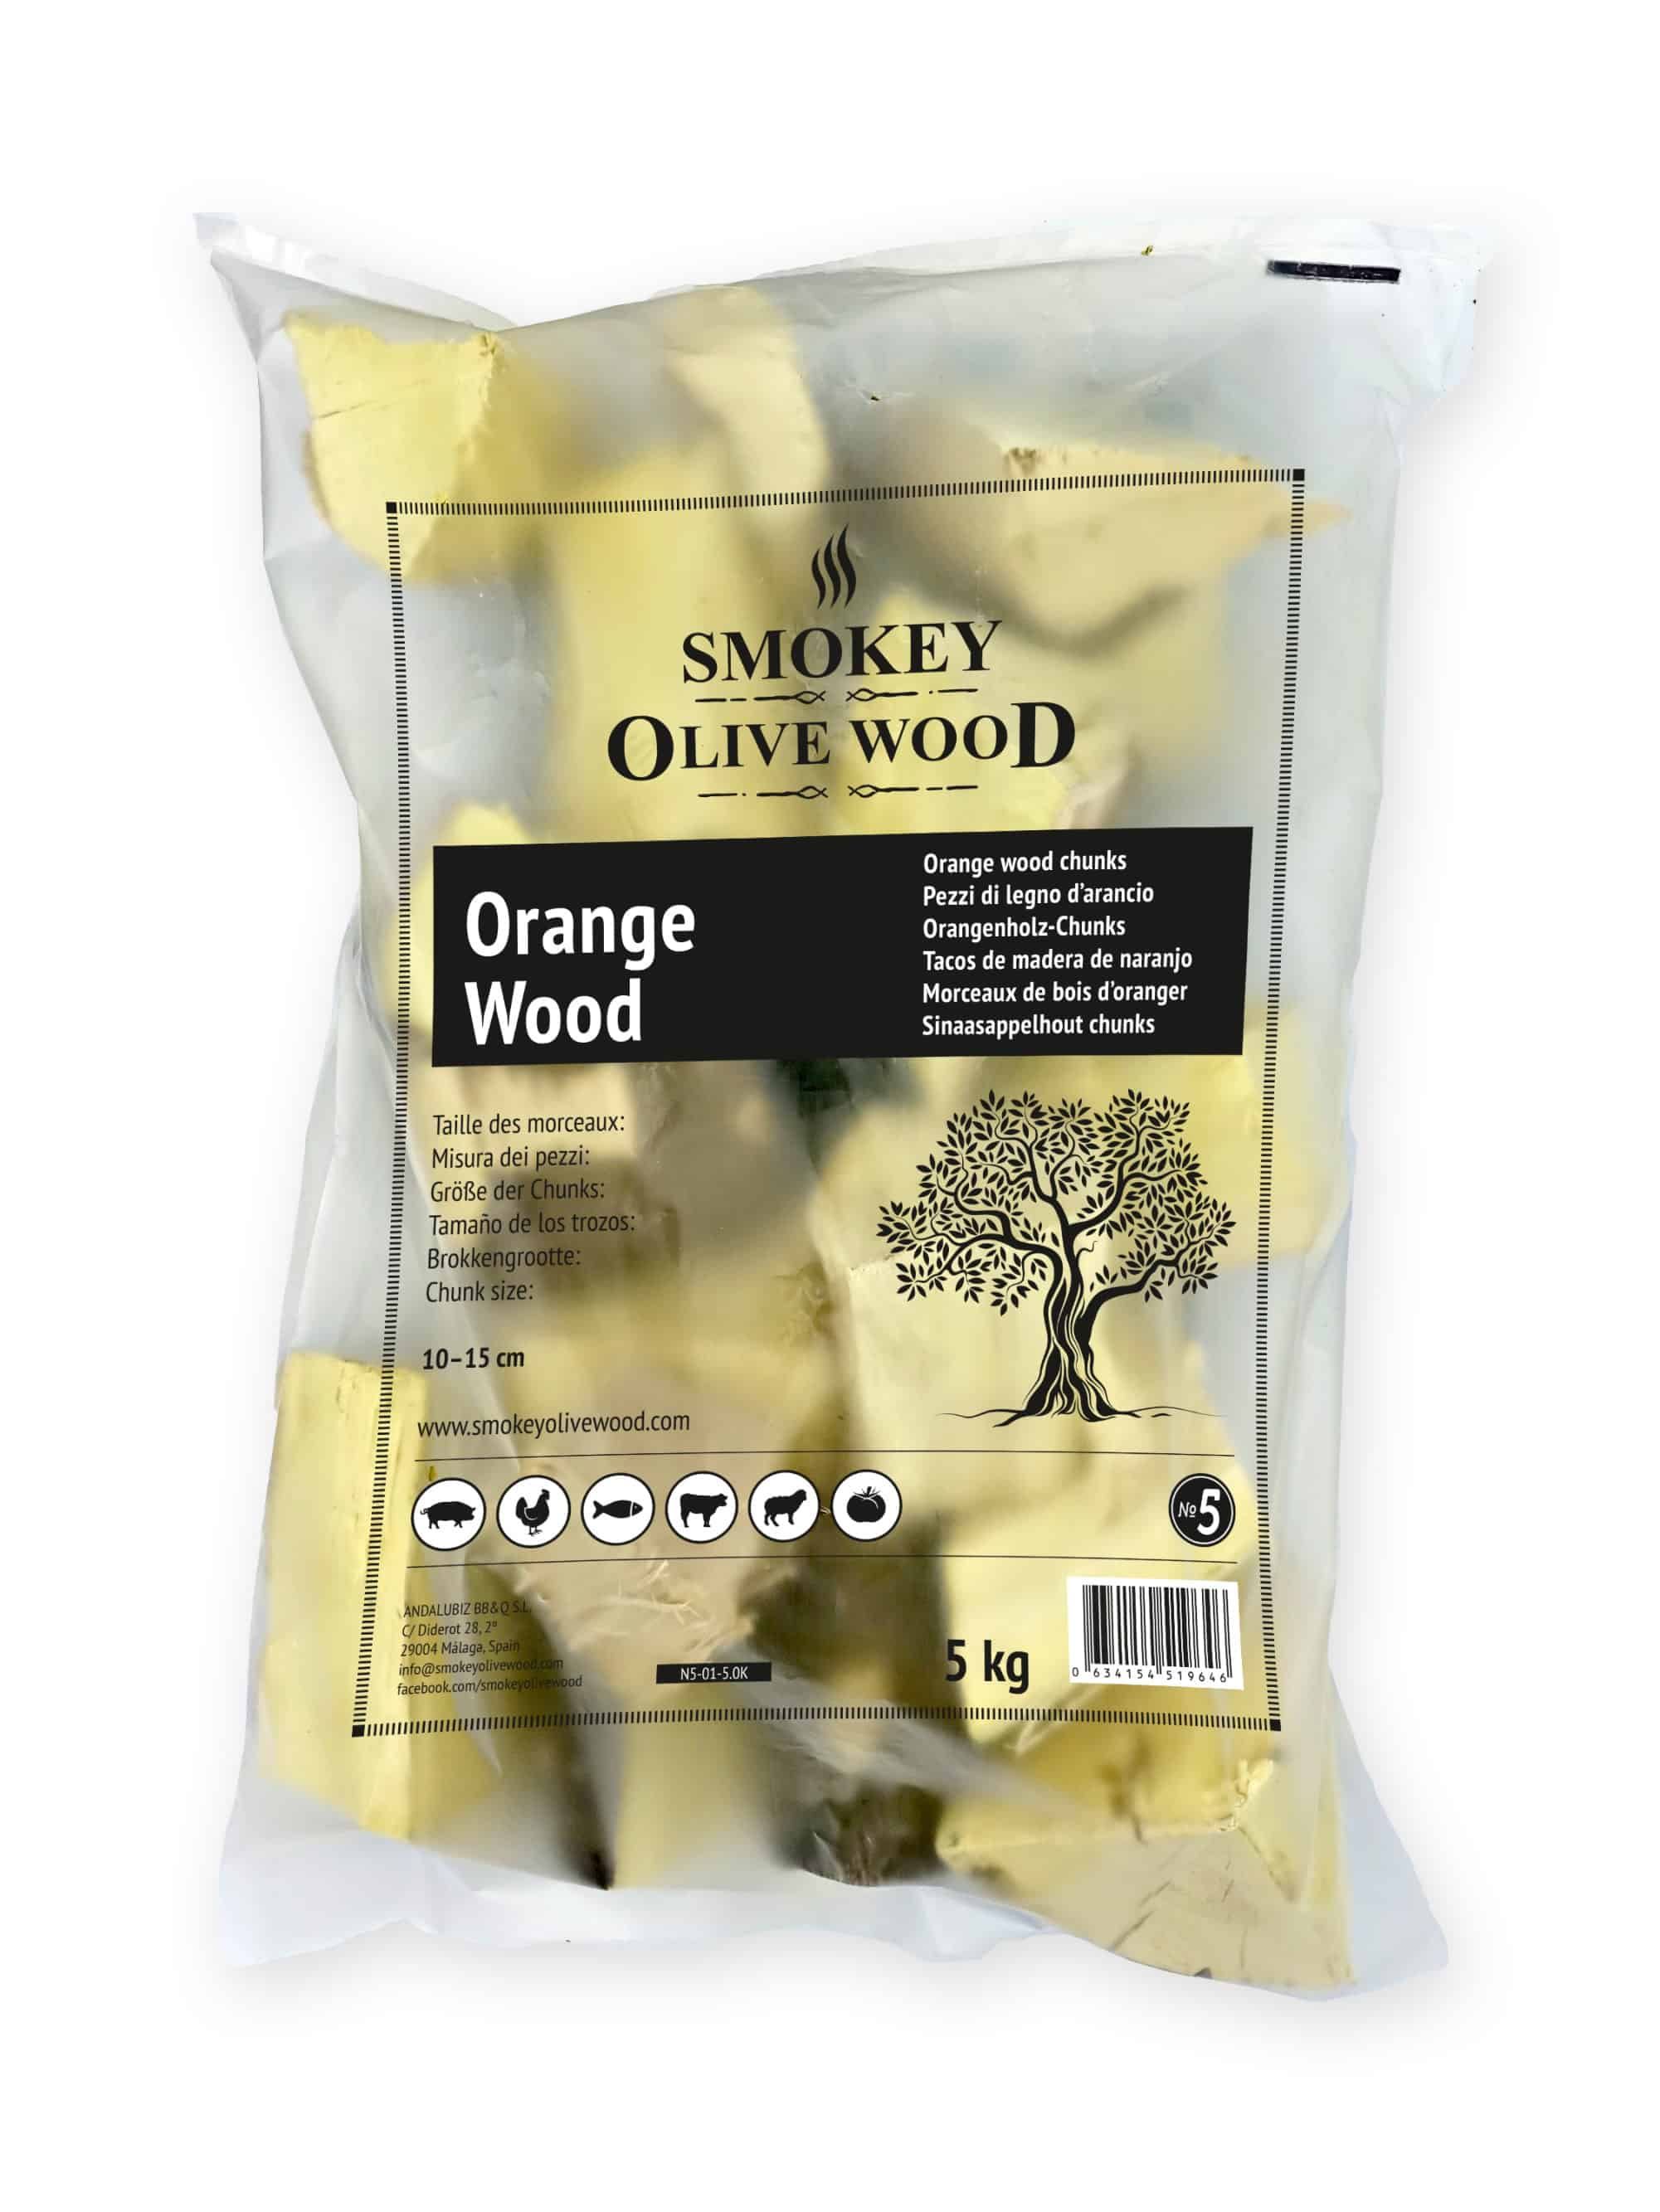 Smokey Olive Wood almond Smoking Dust Nº1Smoker BBQ Chips Grill